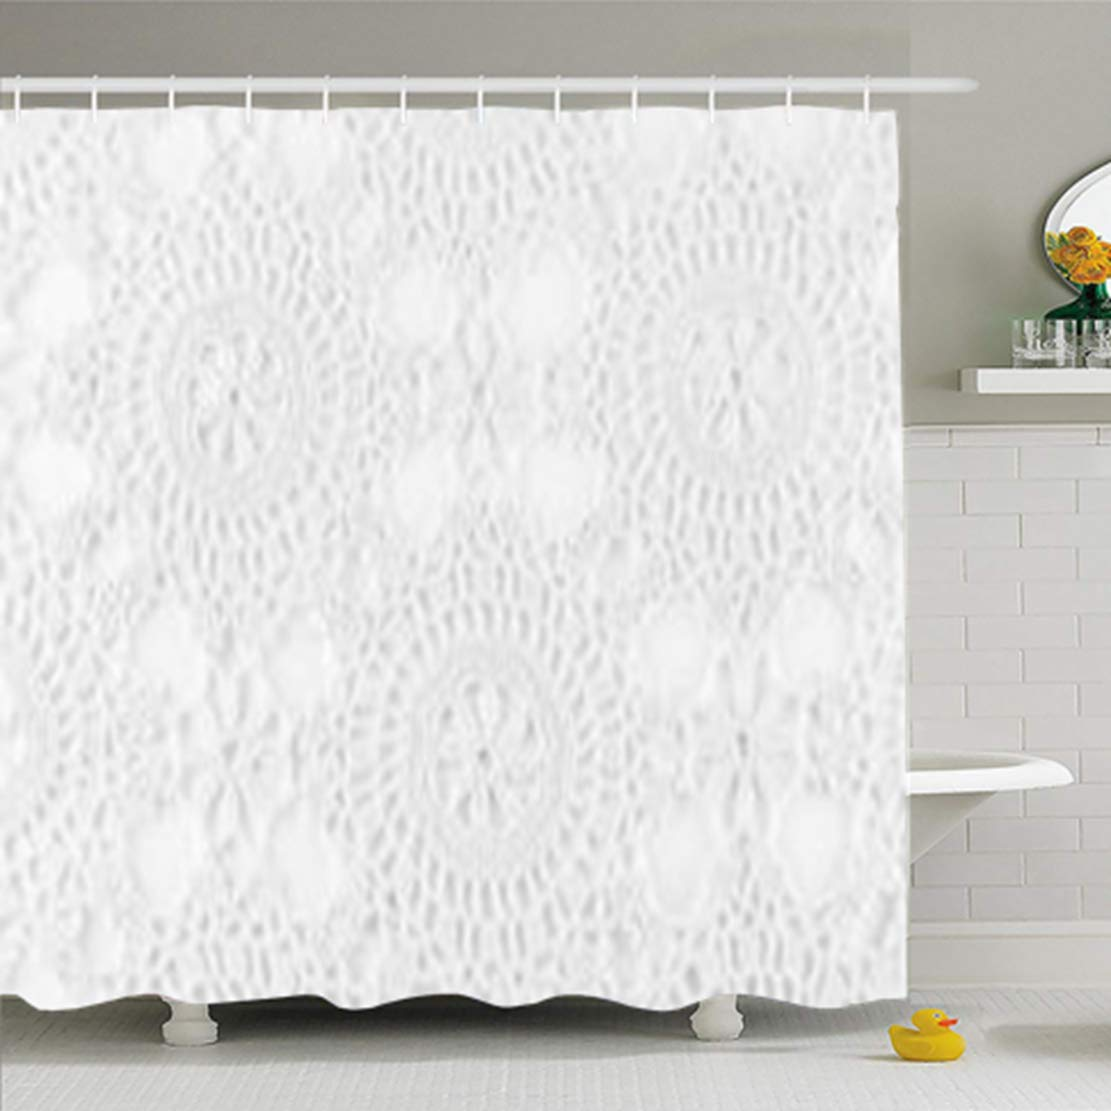 ArtsDecor Shower Curtains 72 X 78 Inches Lace Crochet White Sewn Abstract Antique Black Border Bridal Waterproof Fabric For Bathroom Home Decor Set With